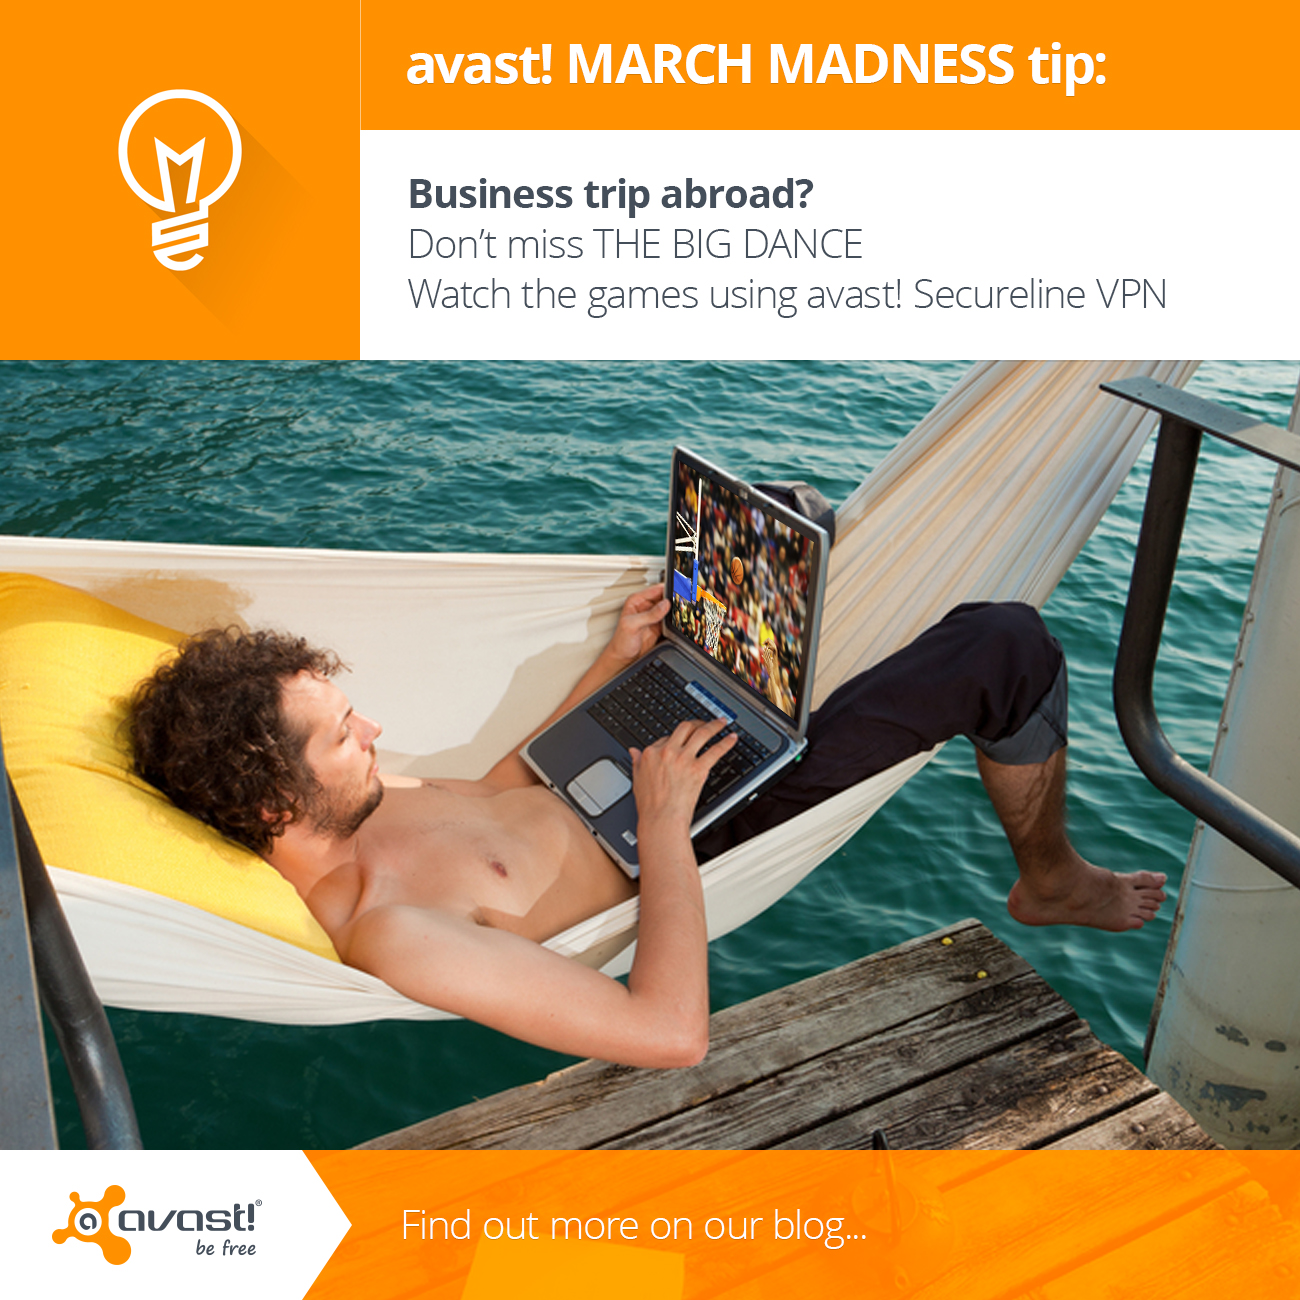 AVAST_March Madness